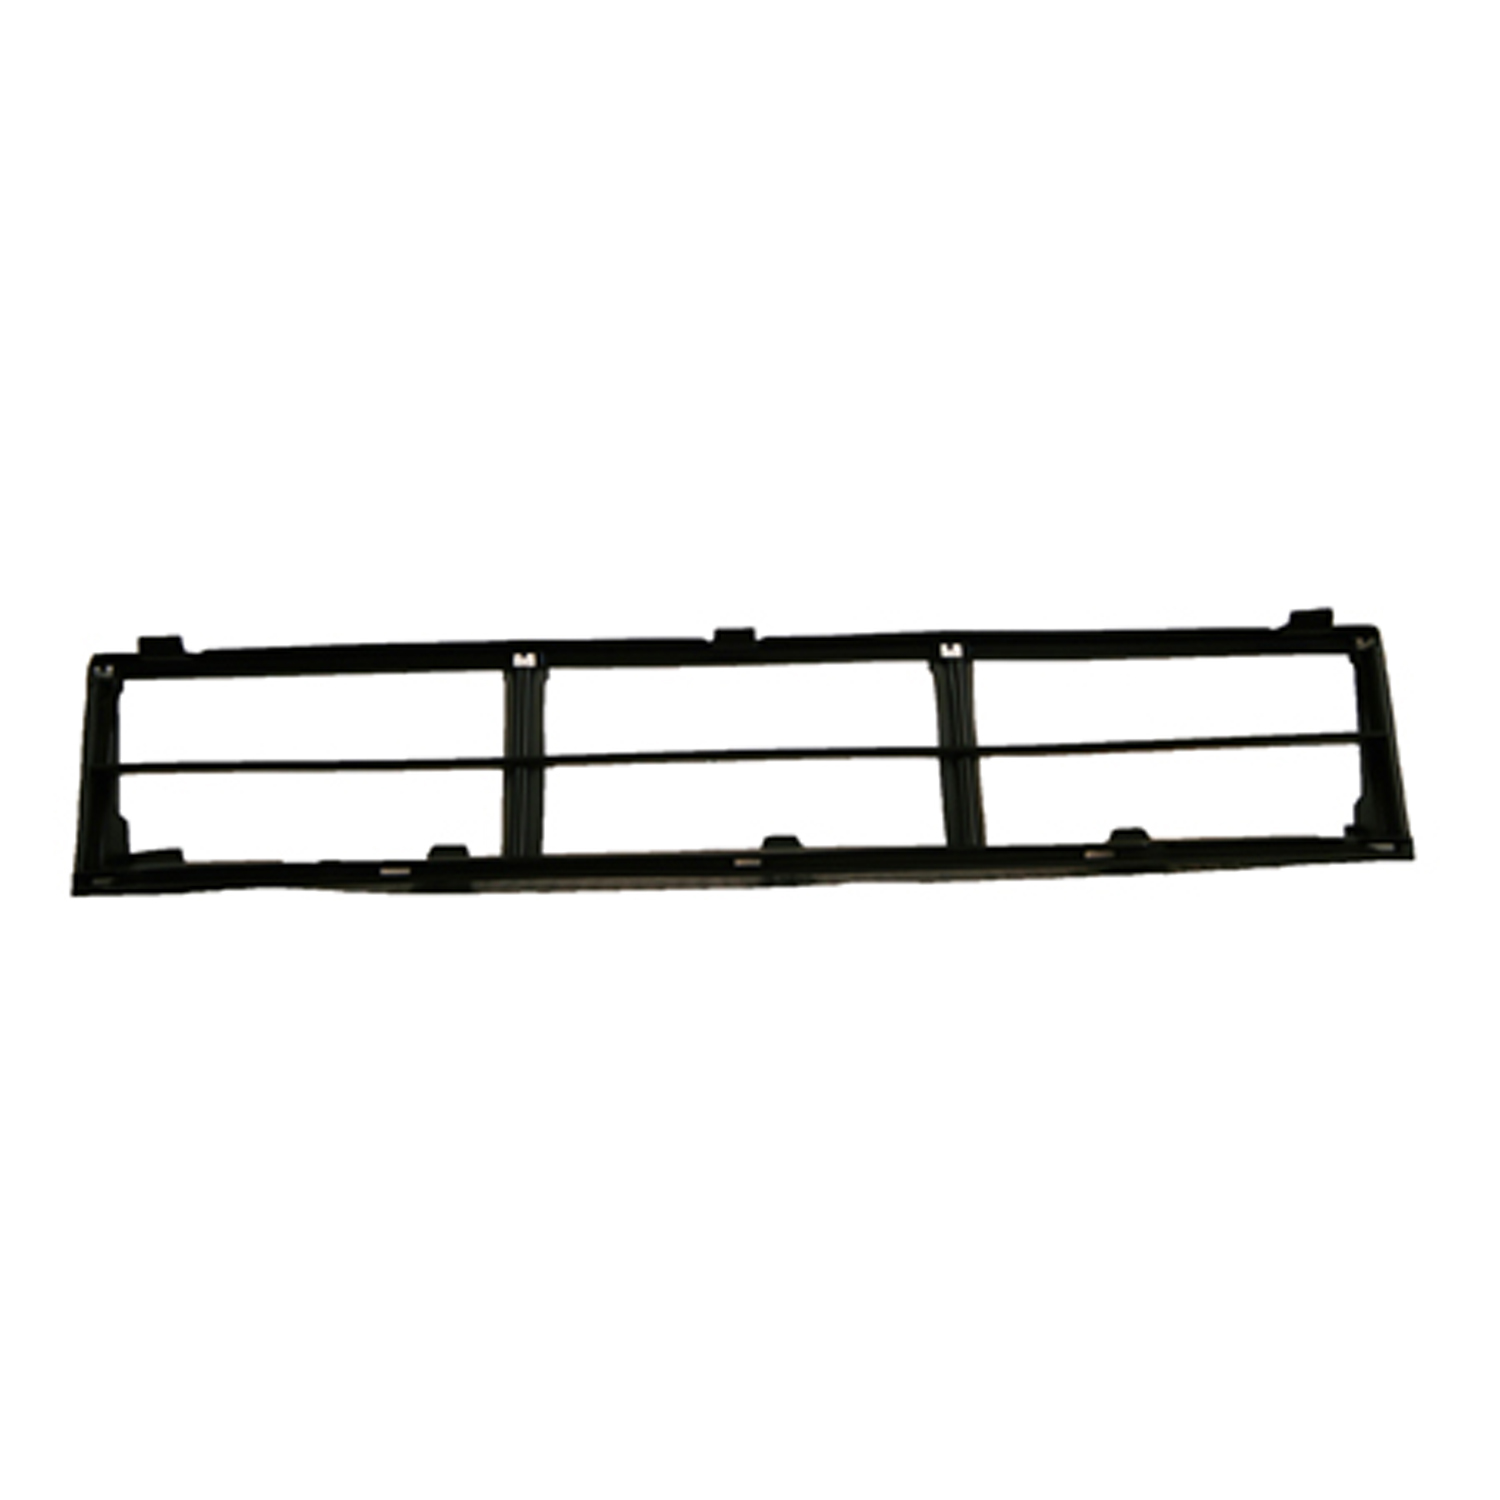 CPP Grill Assembly for BMW 525i, 528i, 530i, 540i Grille